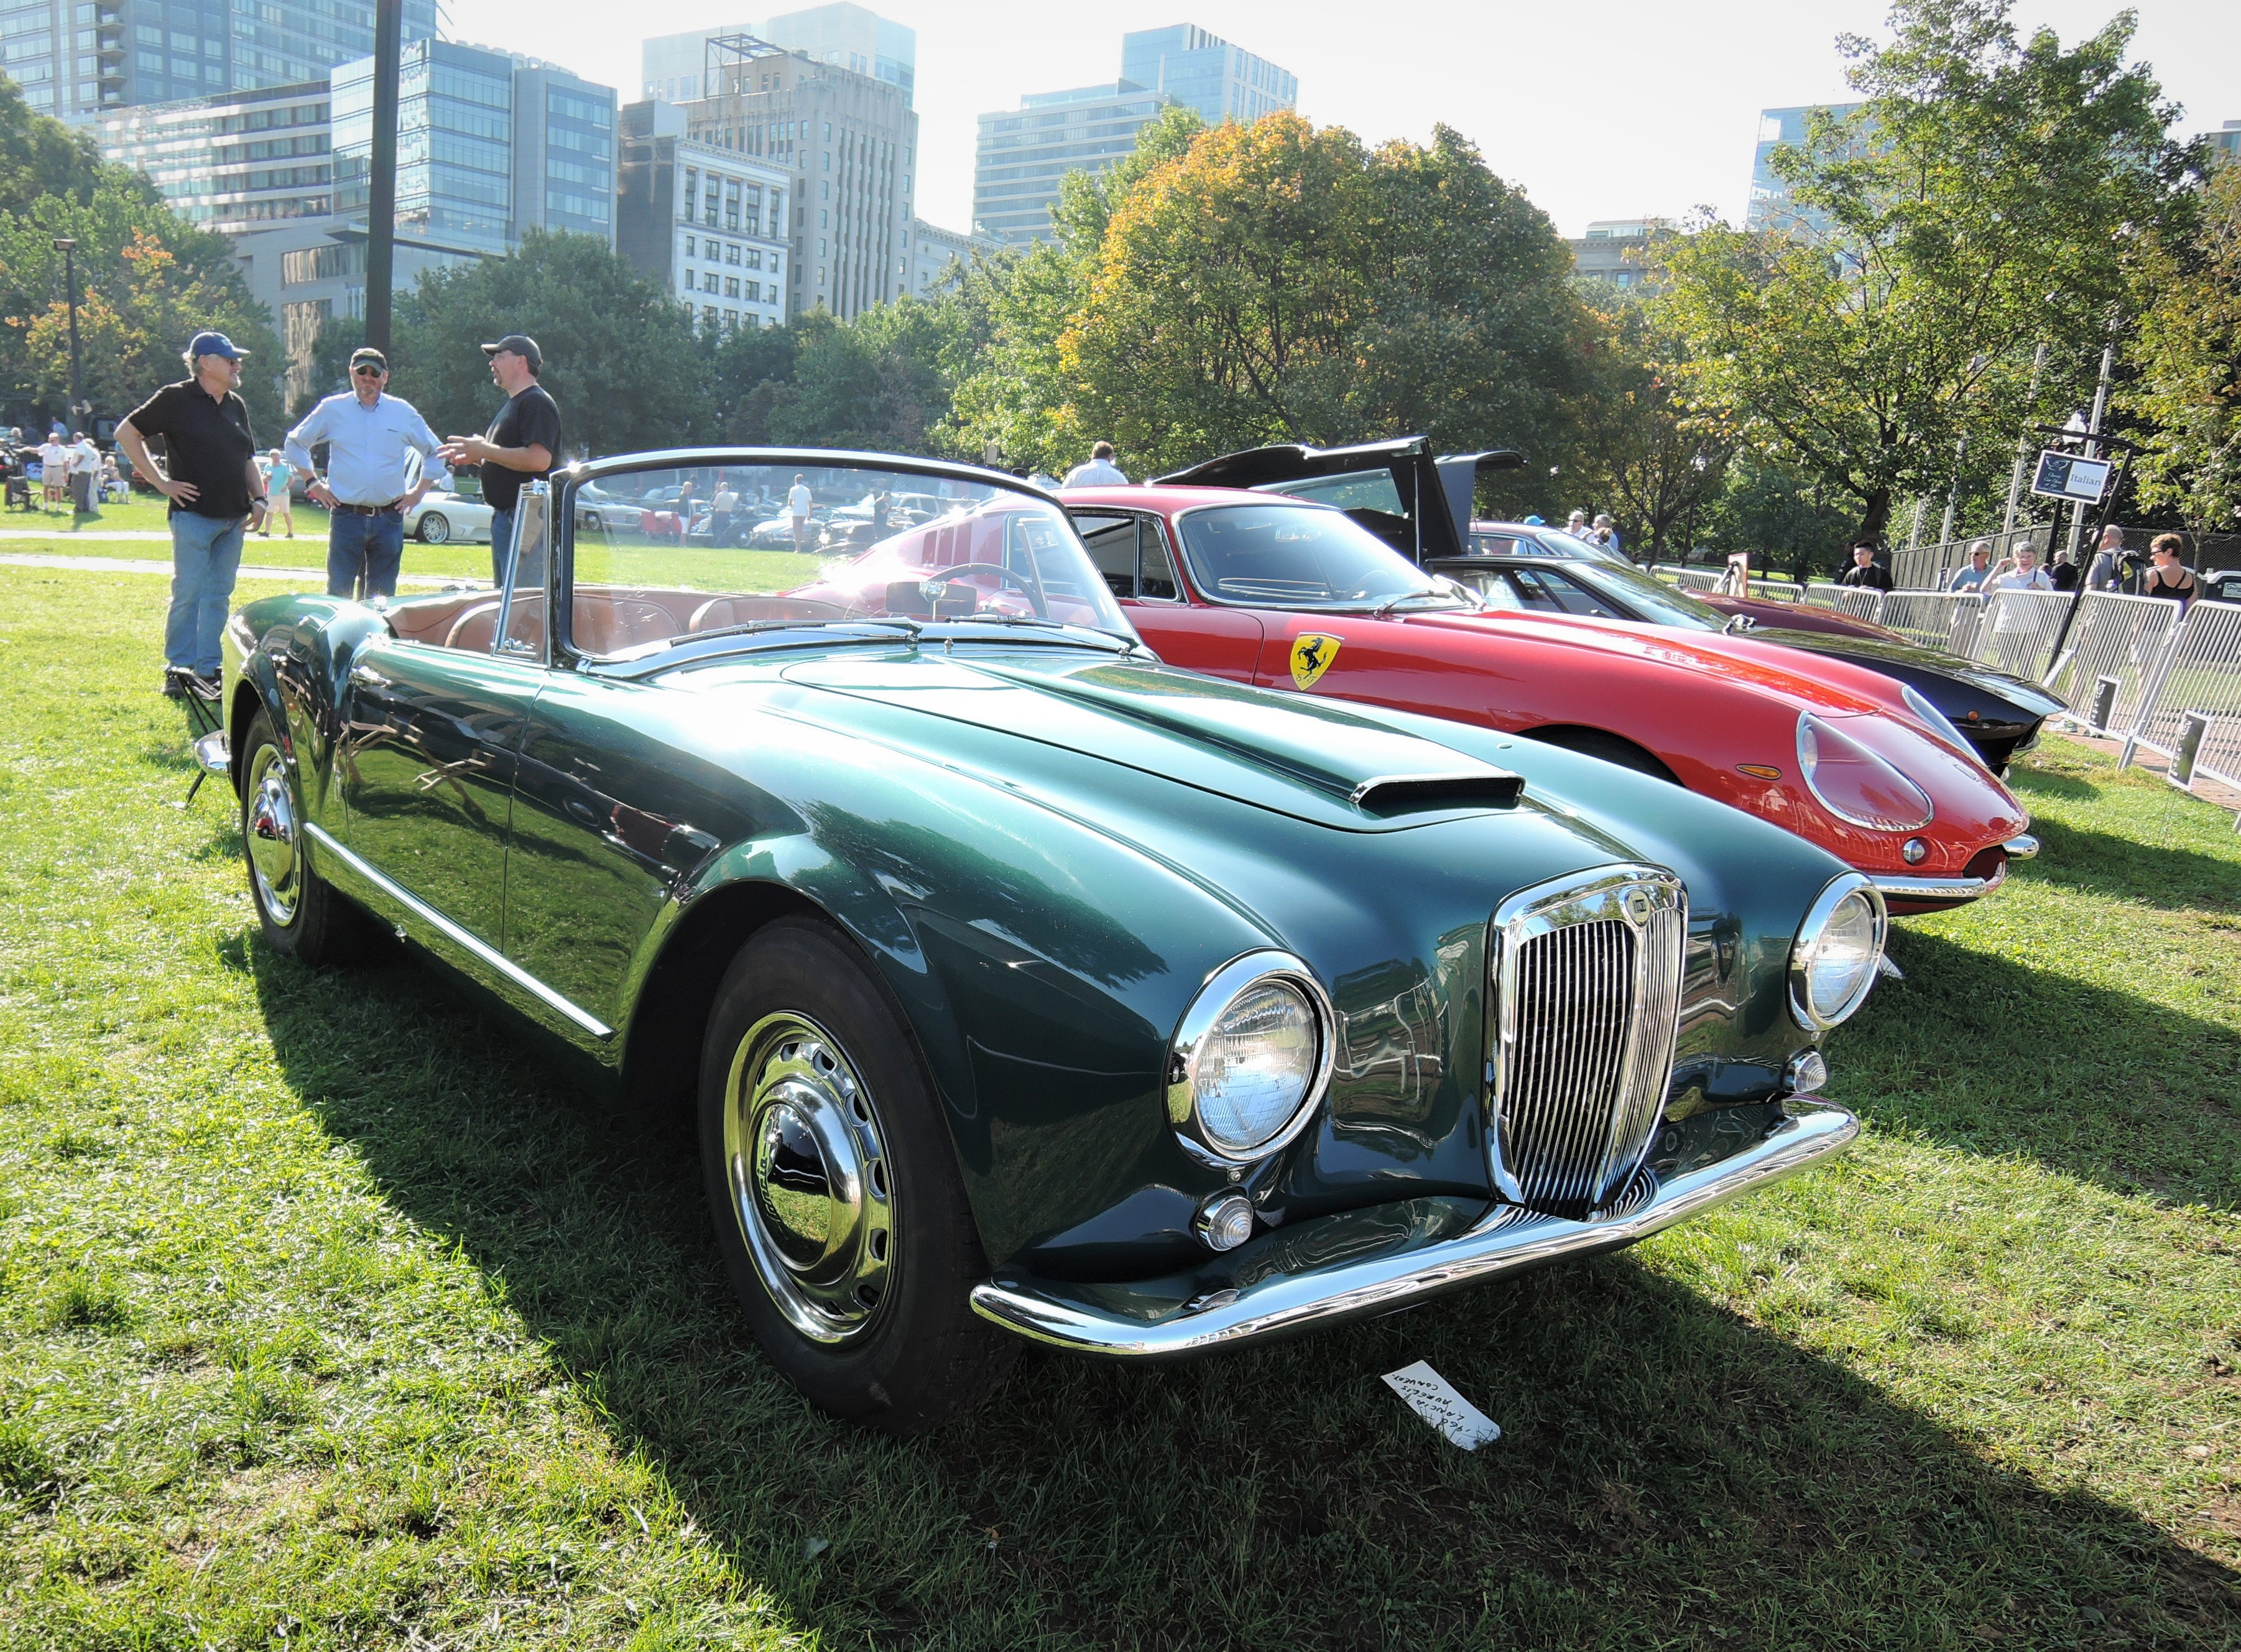 green 1960 Lancia Aurelia B-24 Convertible - The Boston Cup 2017